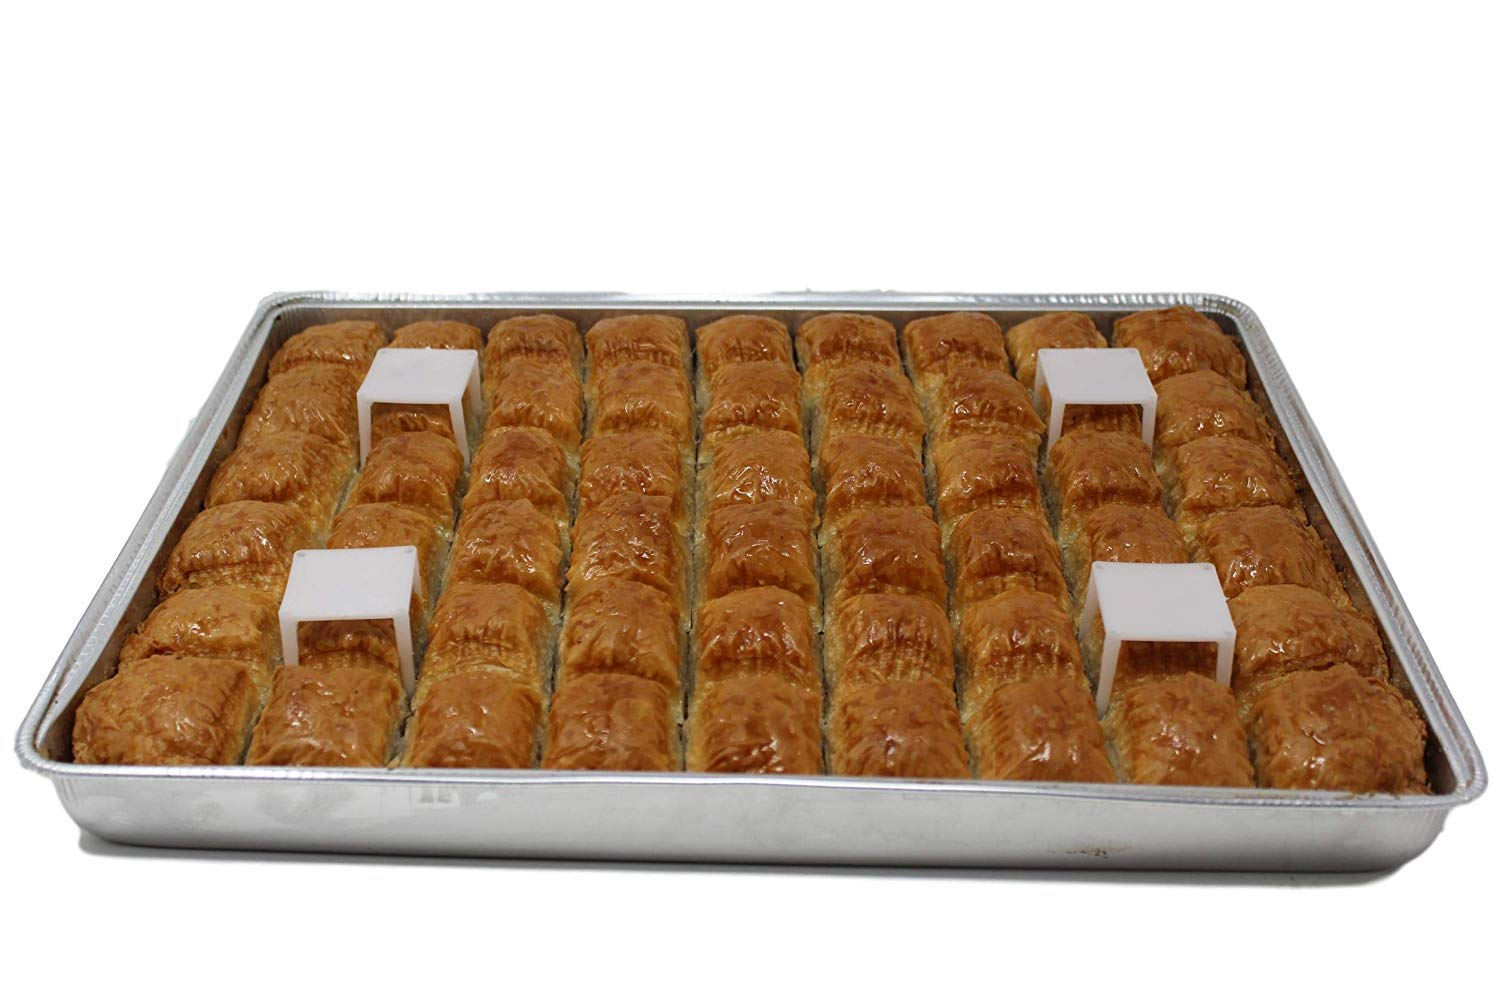 Luxury Baklava with Walnuts Wholesale box Contains 5 Trays, total 33lb Baklava big cut mouthful pieces